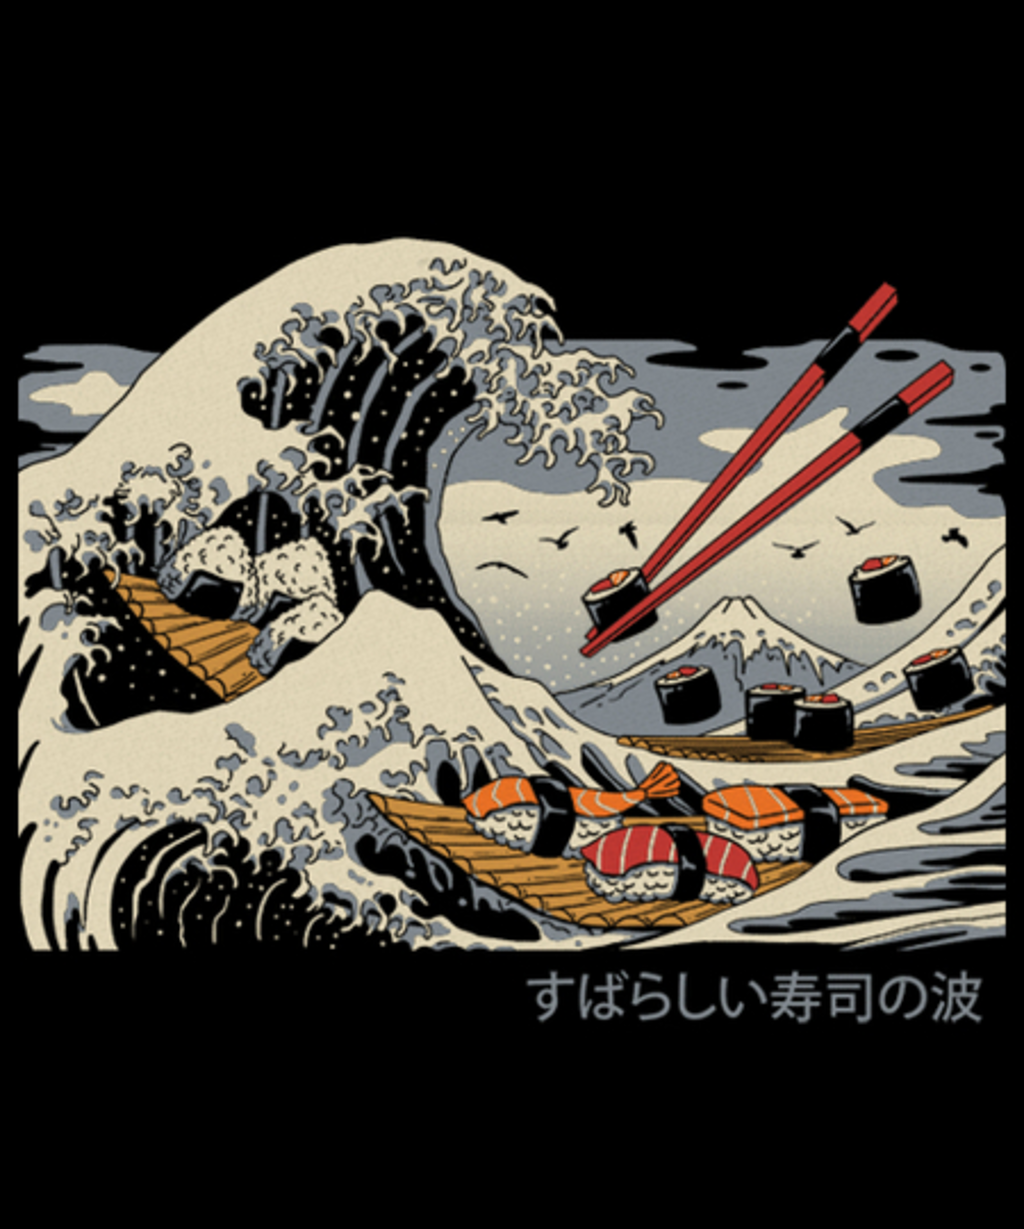 Qwertee: The Great Sushi Wave